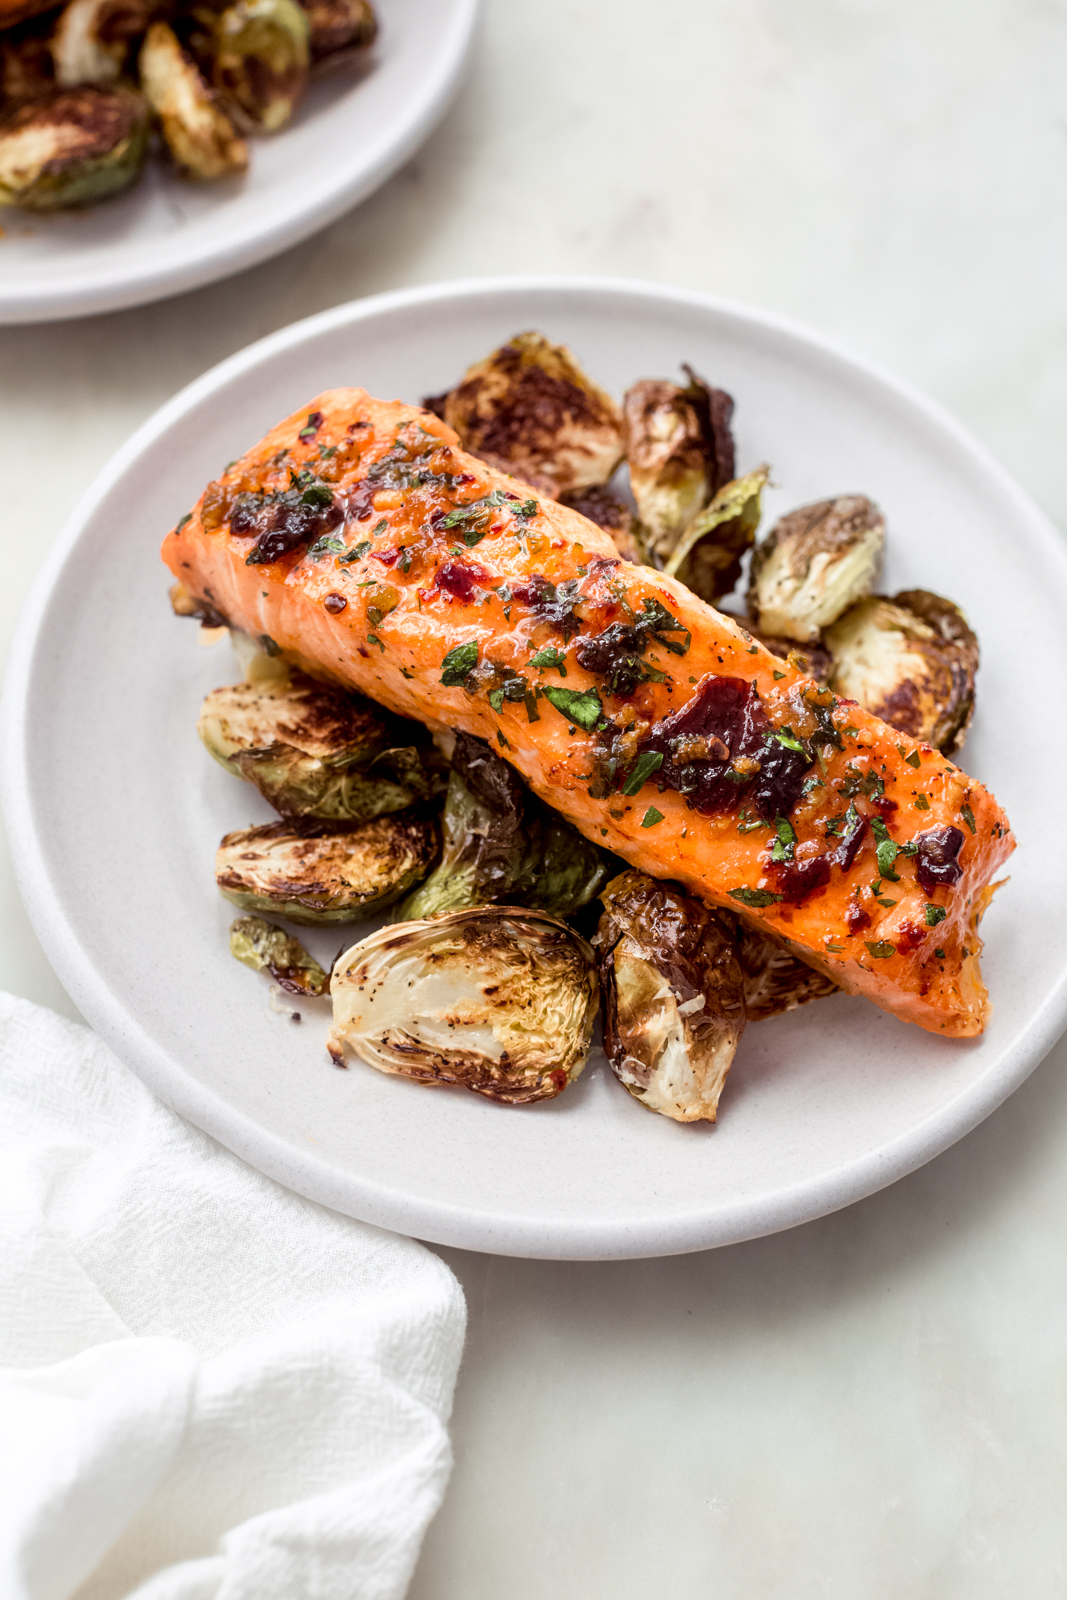 baked salmon on roasted Brussel sprouts on a plate